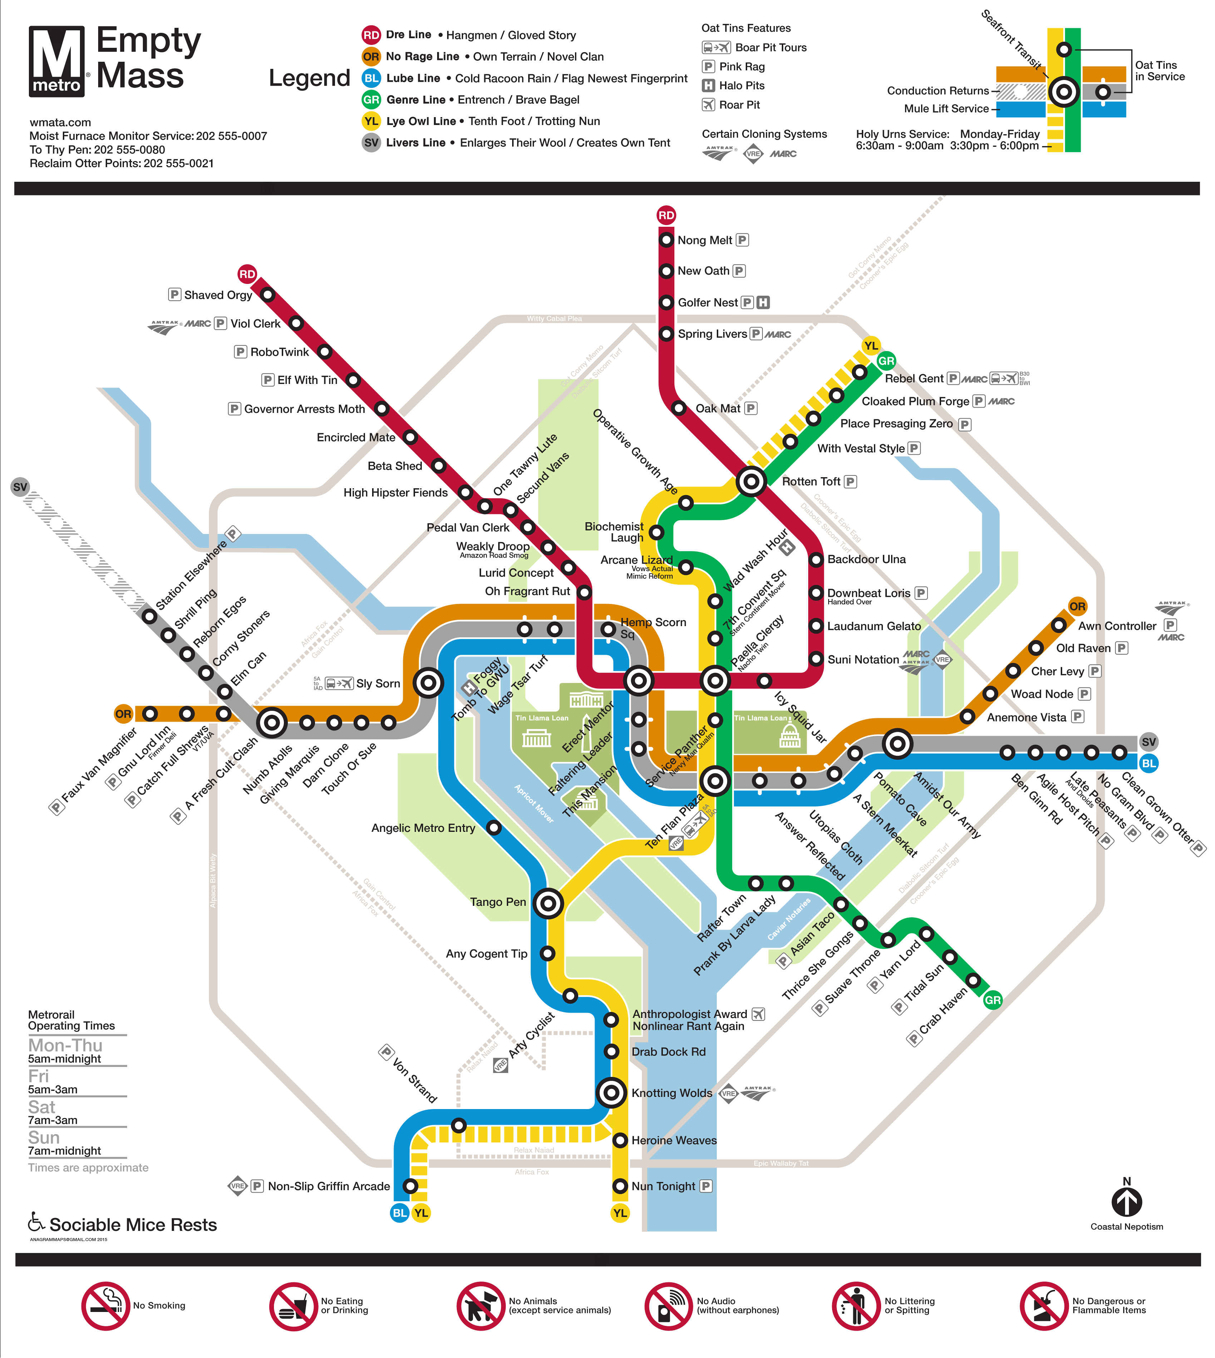 Someone Turned the Metro System Map Into Hilarious Anagrams ... on us map showing dc, printable map washington dc, map with metro stops dc, united states map with dc, subway map for washington dc, map showing washington, neighborhood and ward map dc, usa map washington dc, county map washington dc, simple map washington dc, interactive metro map washington dc, street map with metro stations washington dc, zip code map nw dc, map ofwashington dc, wmata map washington dc, city map dc, google maps dc, civil war map washington dc, print map washington dc, star map washington dc,